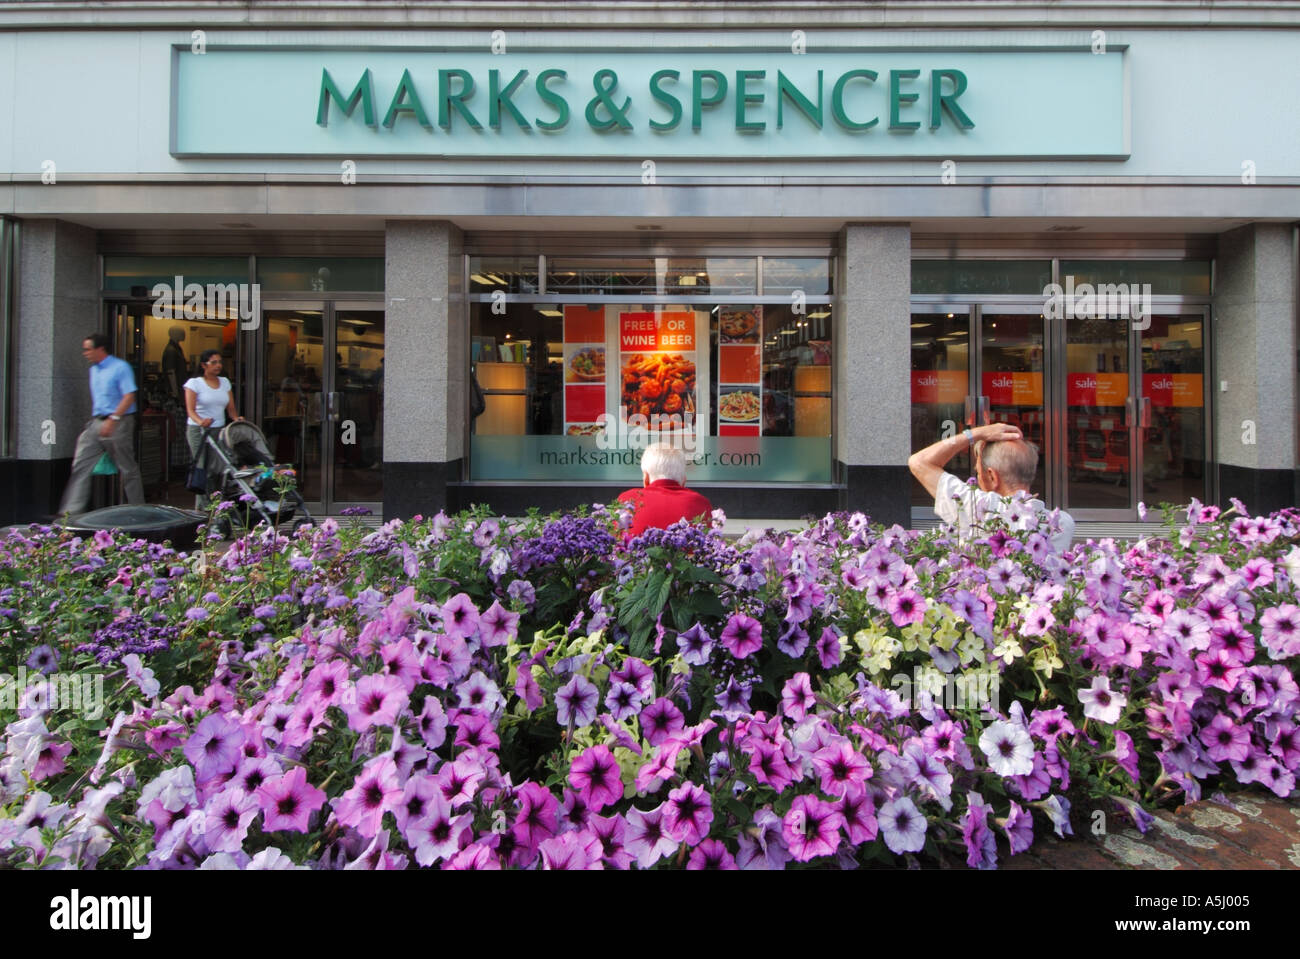 Flower shop window display plants stock photos flower shop window brentwood town centre marks and spencer store in high street with summer bedding floral displays and izmirmasajfo